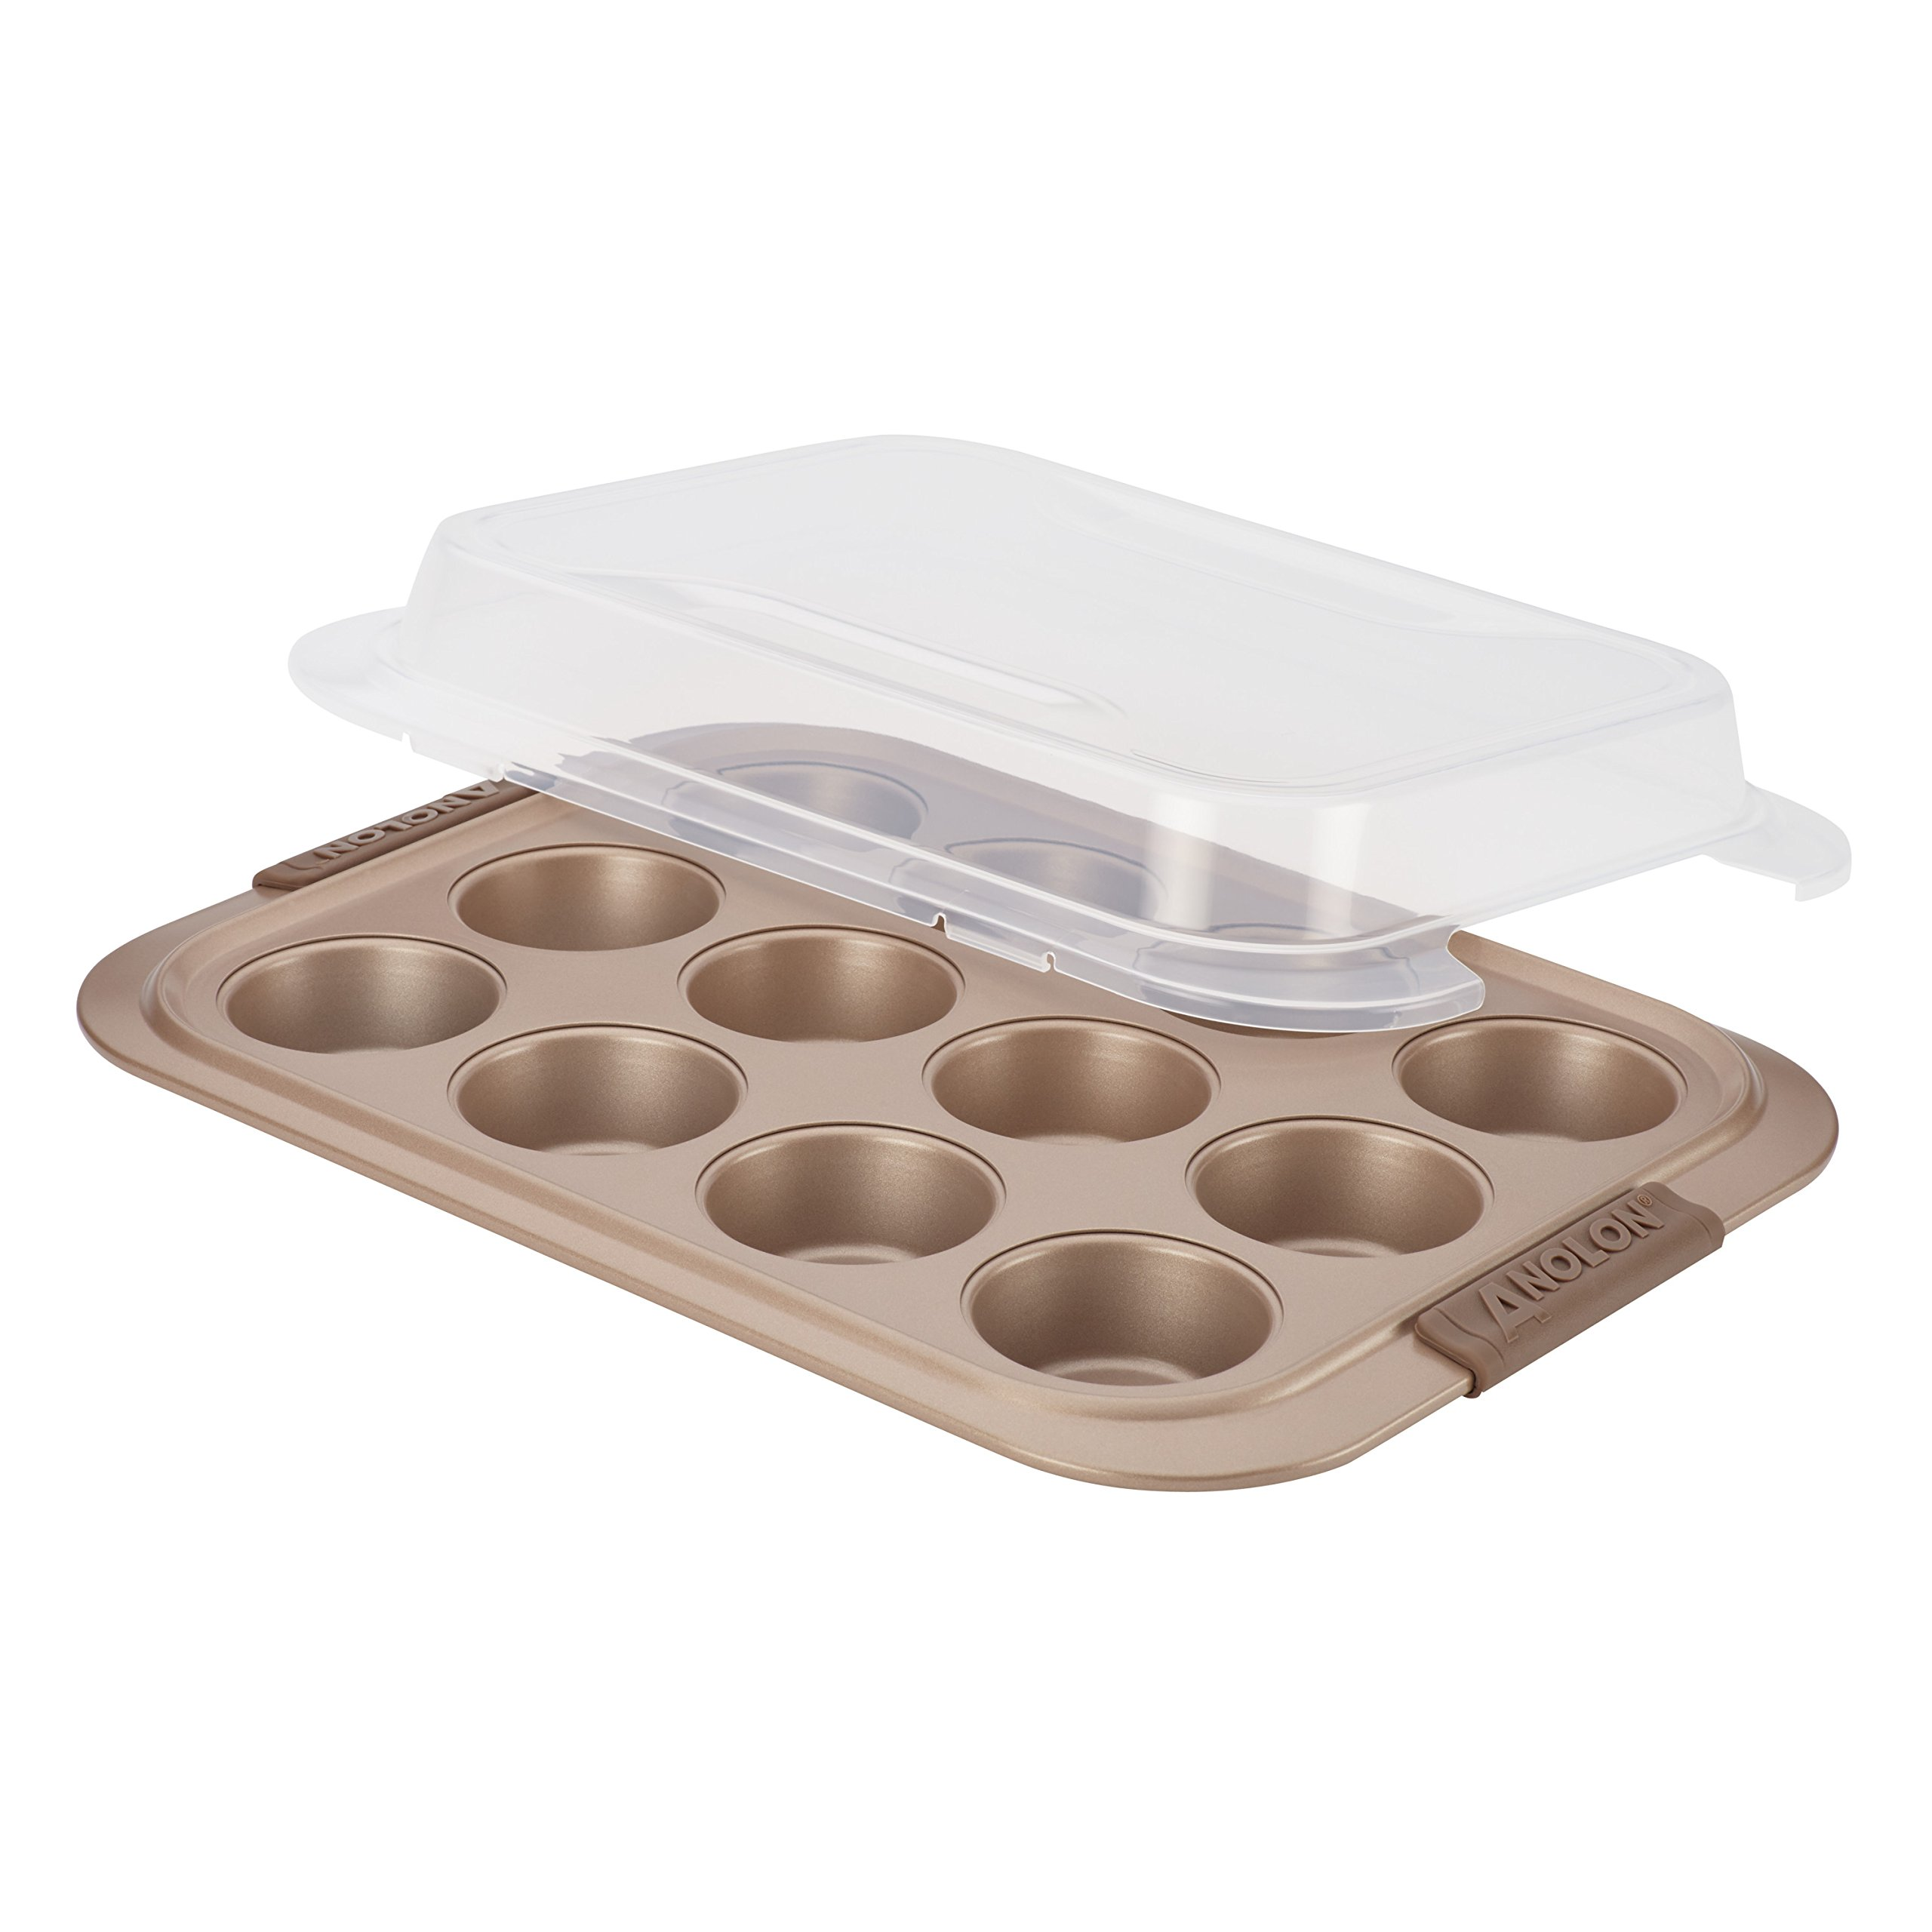 Anolon 12 Cup Advanced Bronze Nonstick Bakeware Muffin Pan with Silicone Grips, Brown